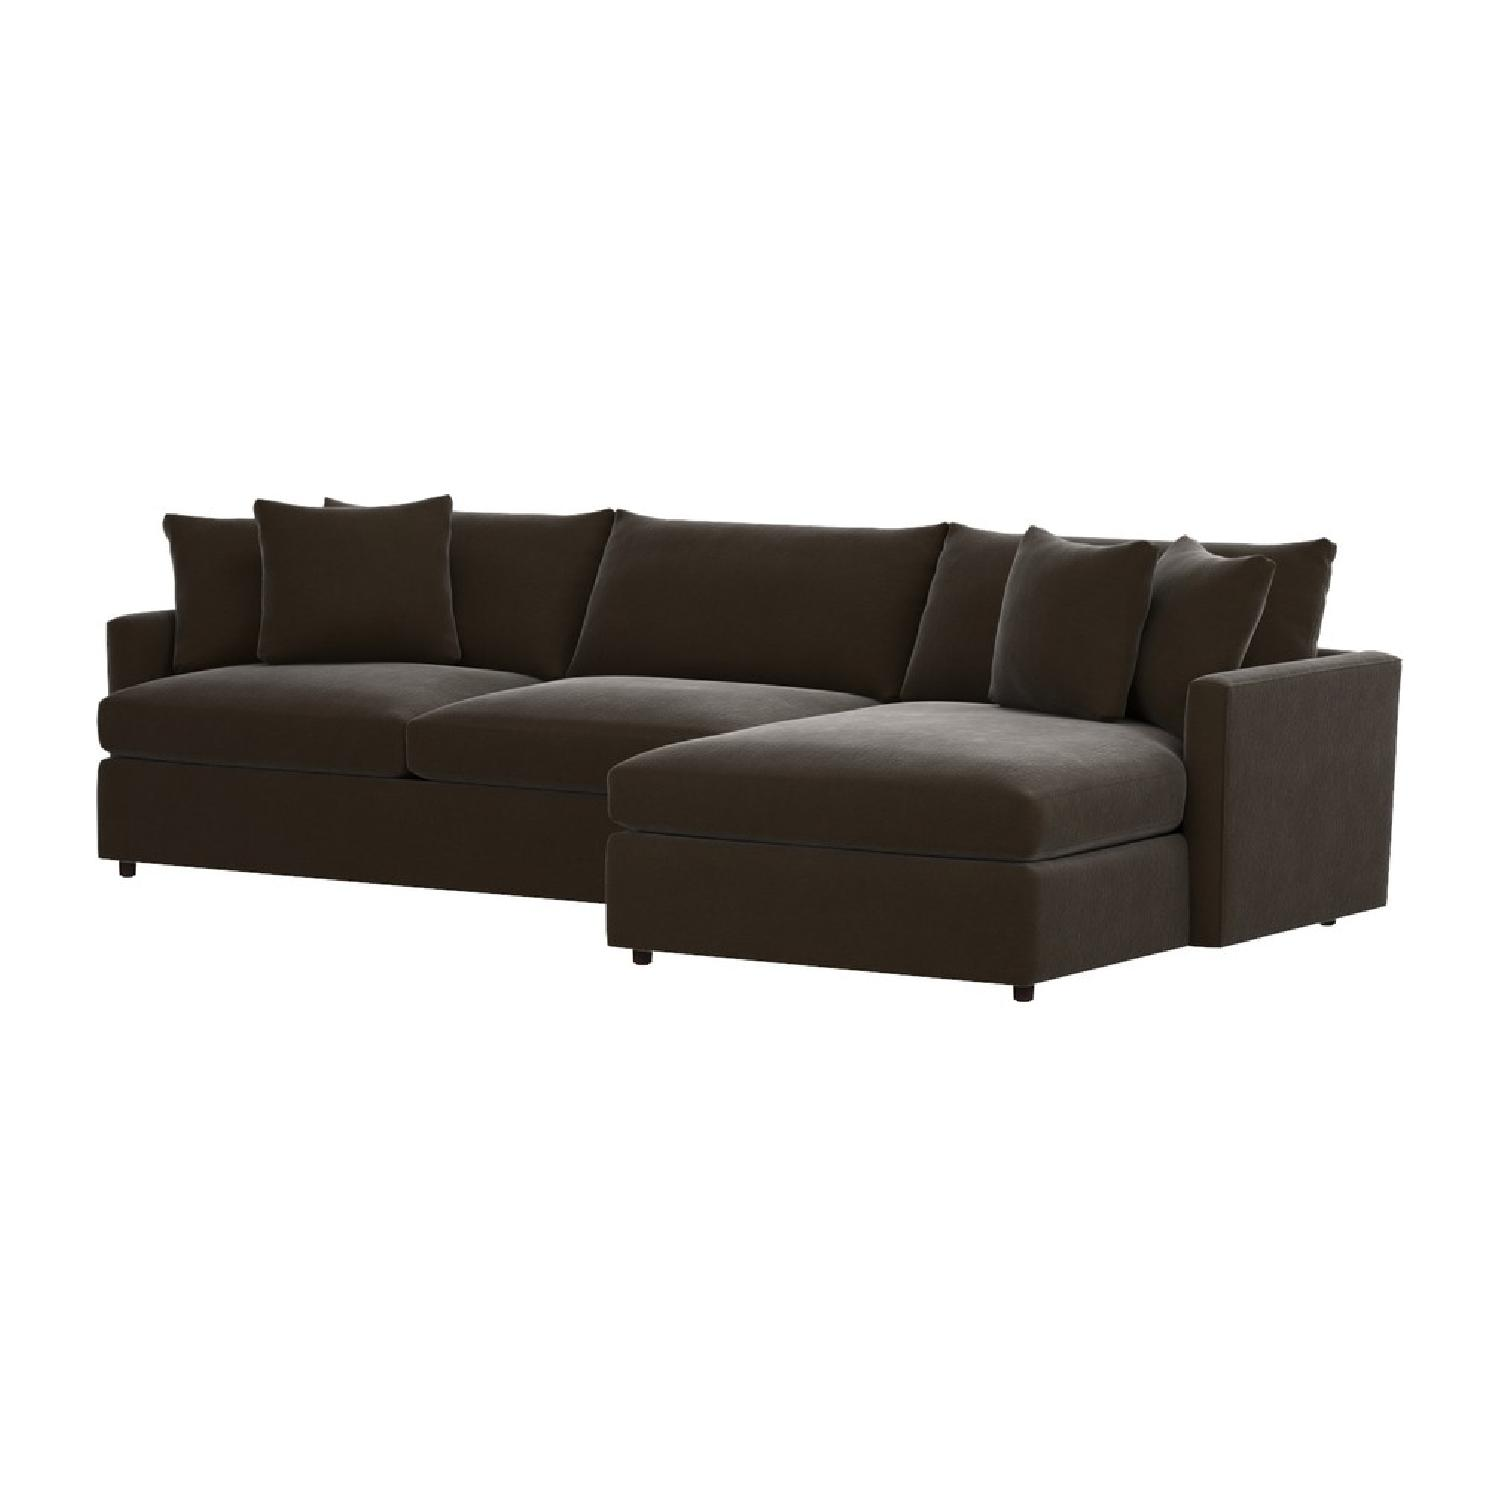 Crate Barrel Lounge 2Piece Sectional Sofa AptDeco